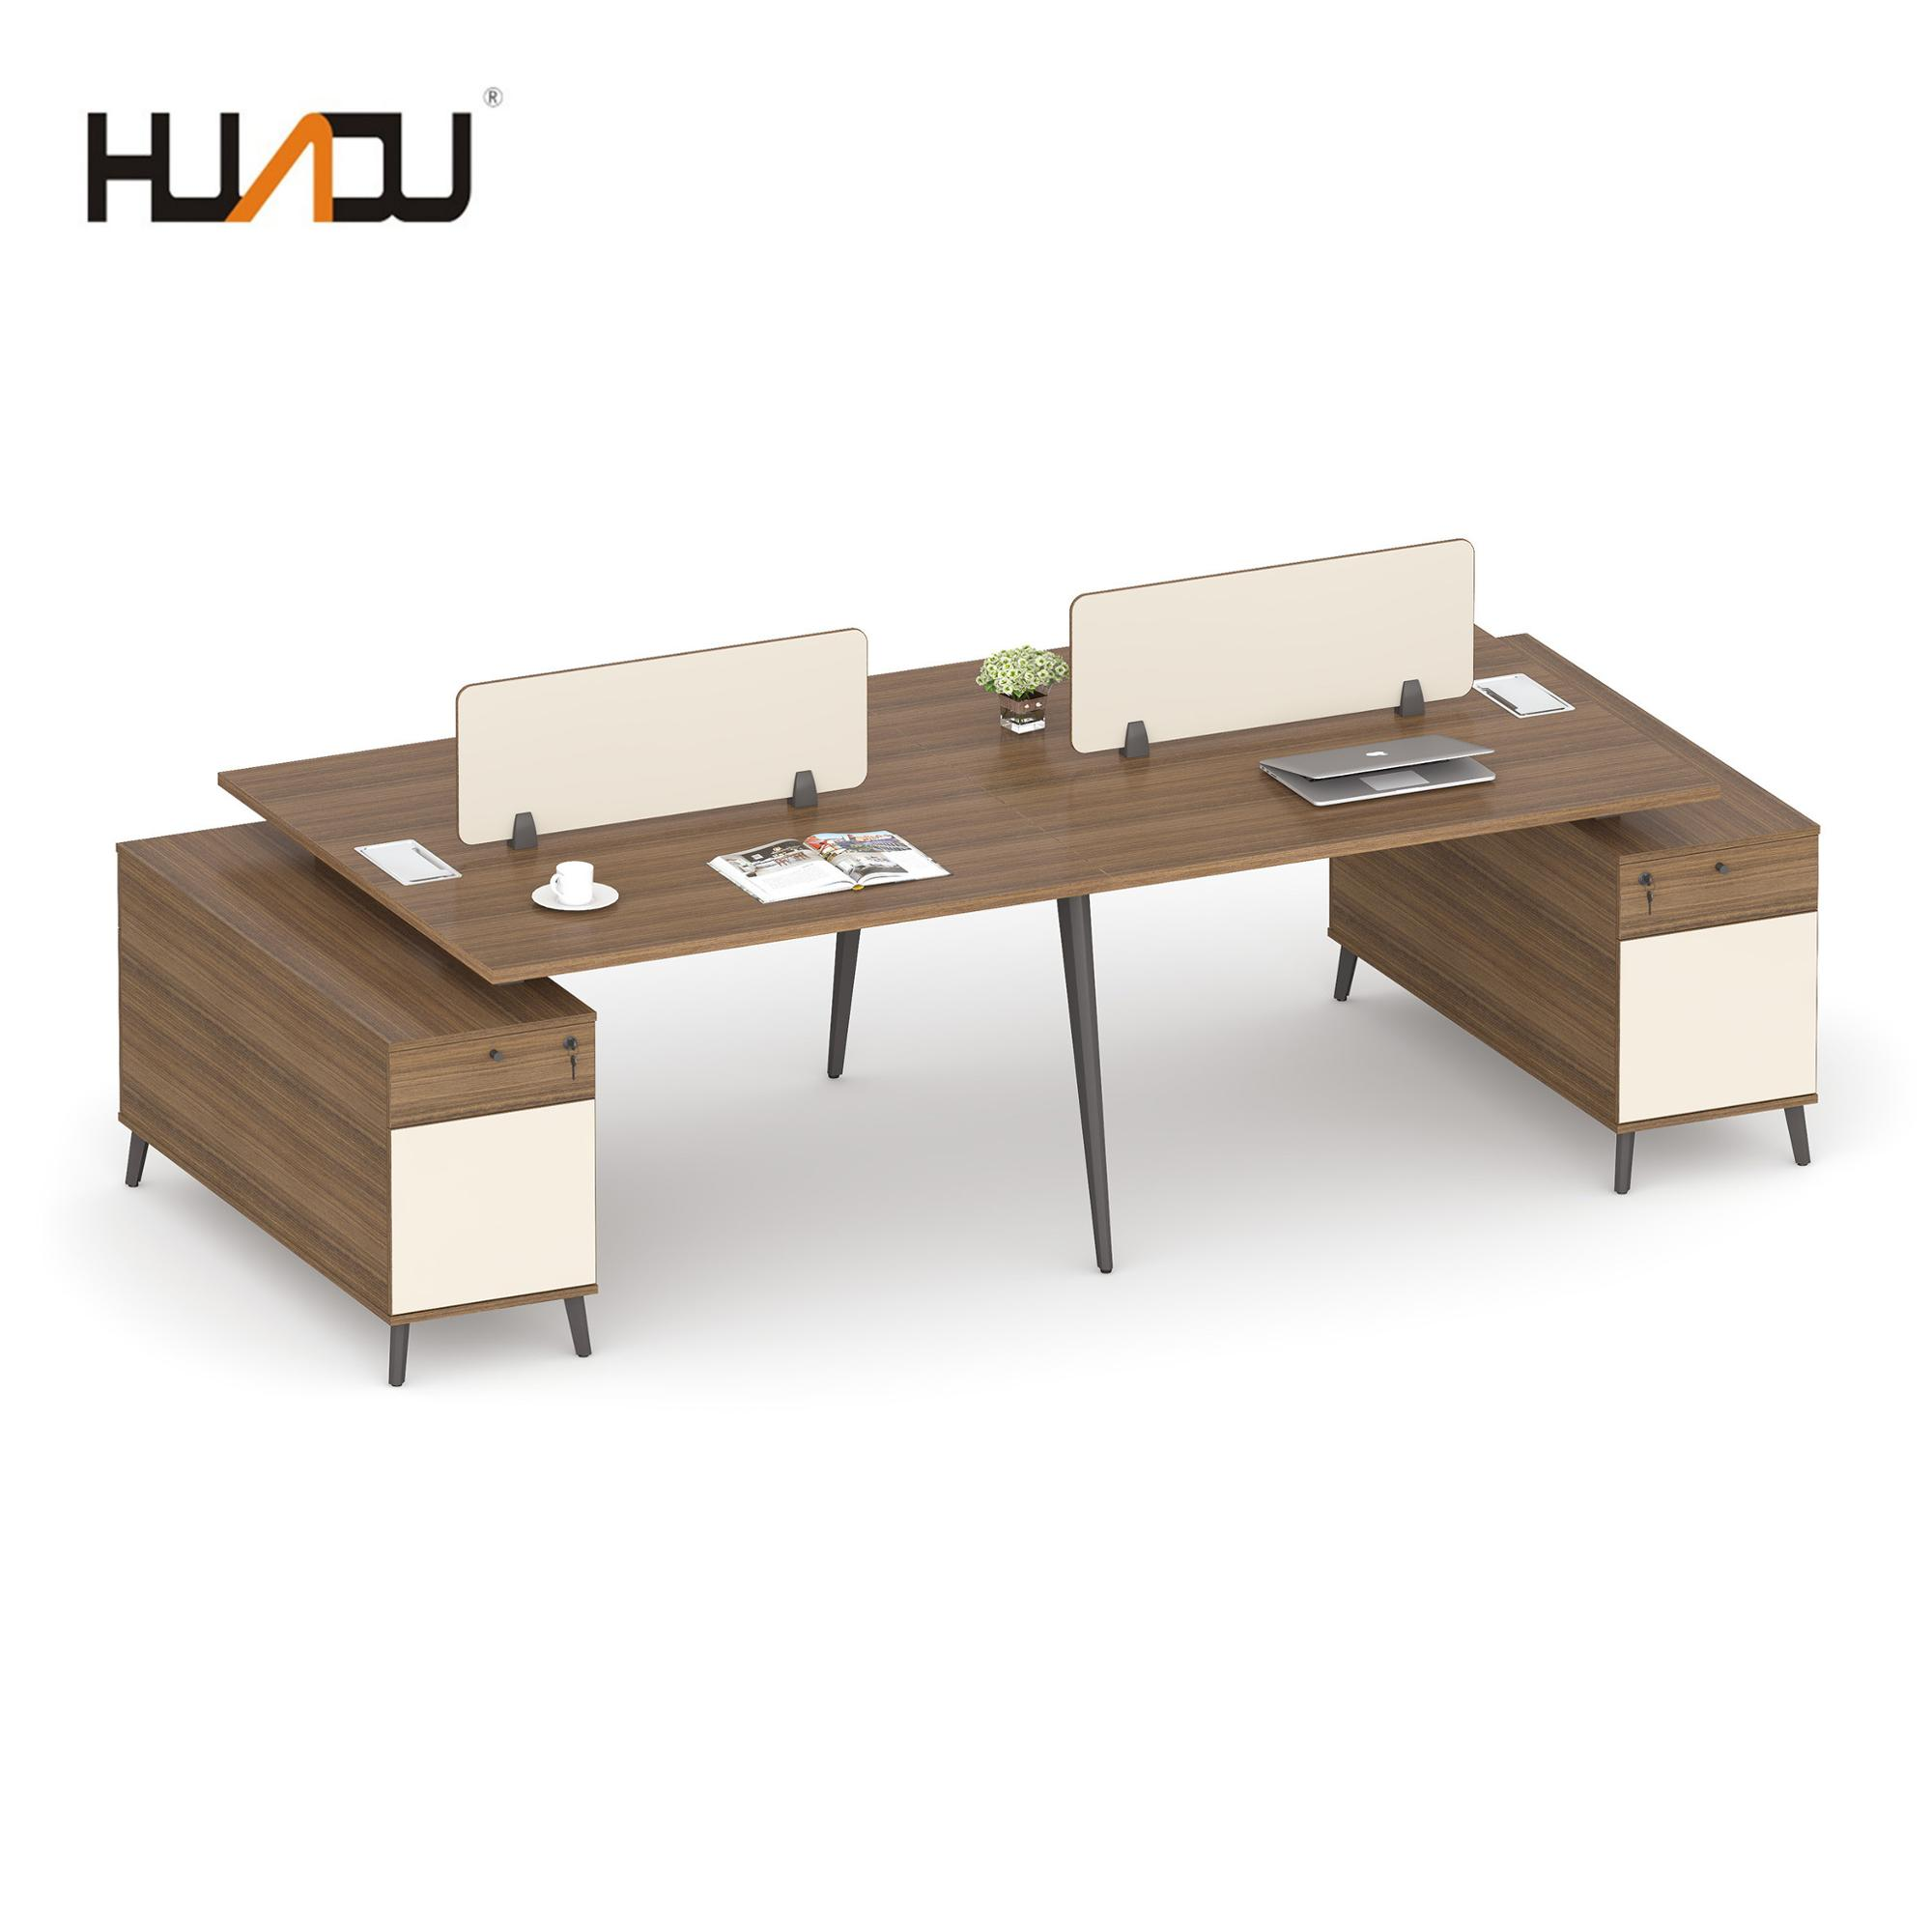 Workstation Furniture Modern Design Workstation For 4 Seat Person Wooden Office Furniture Computer Laptop Table Cubicles Partition Buy 4 Seat Office Workstation